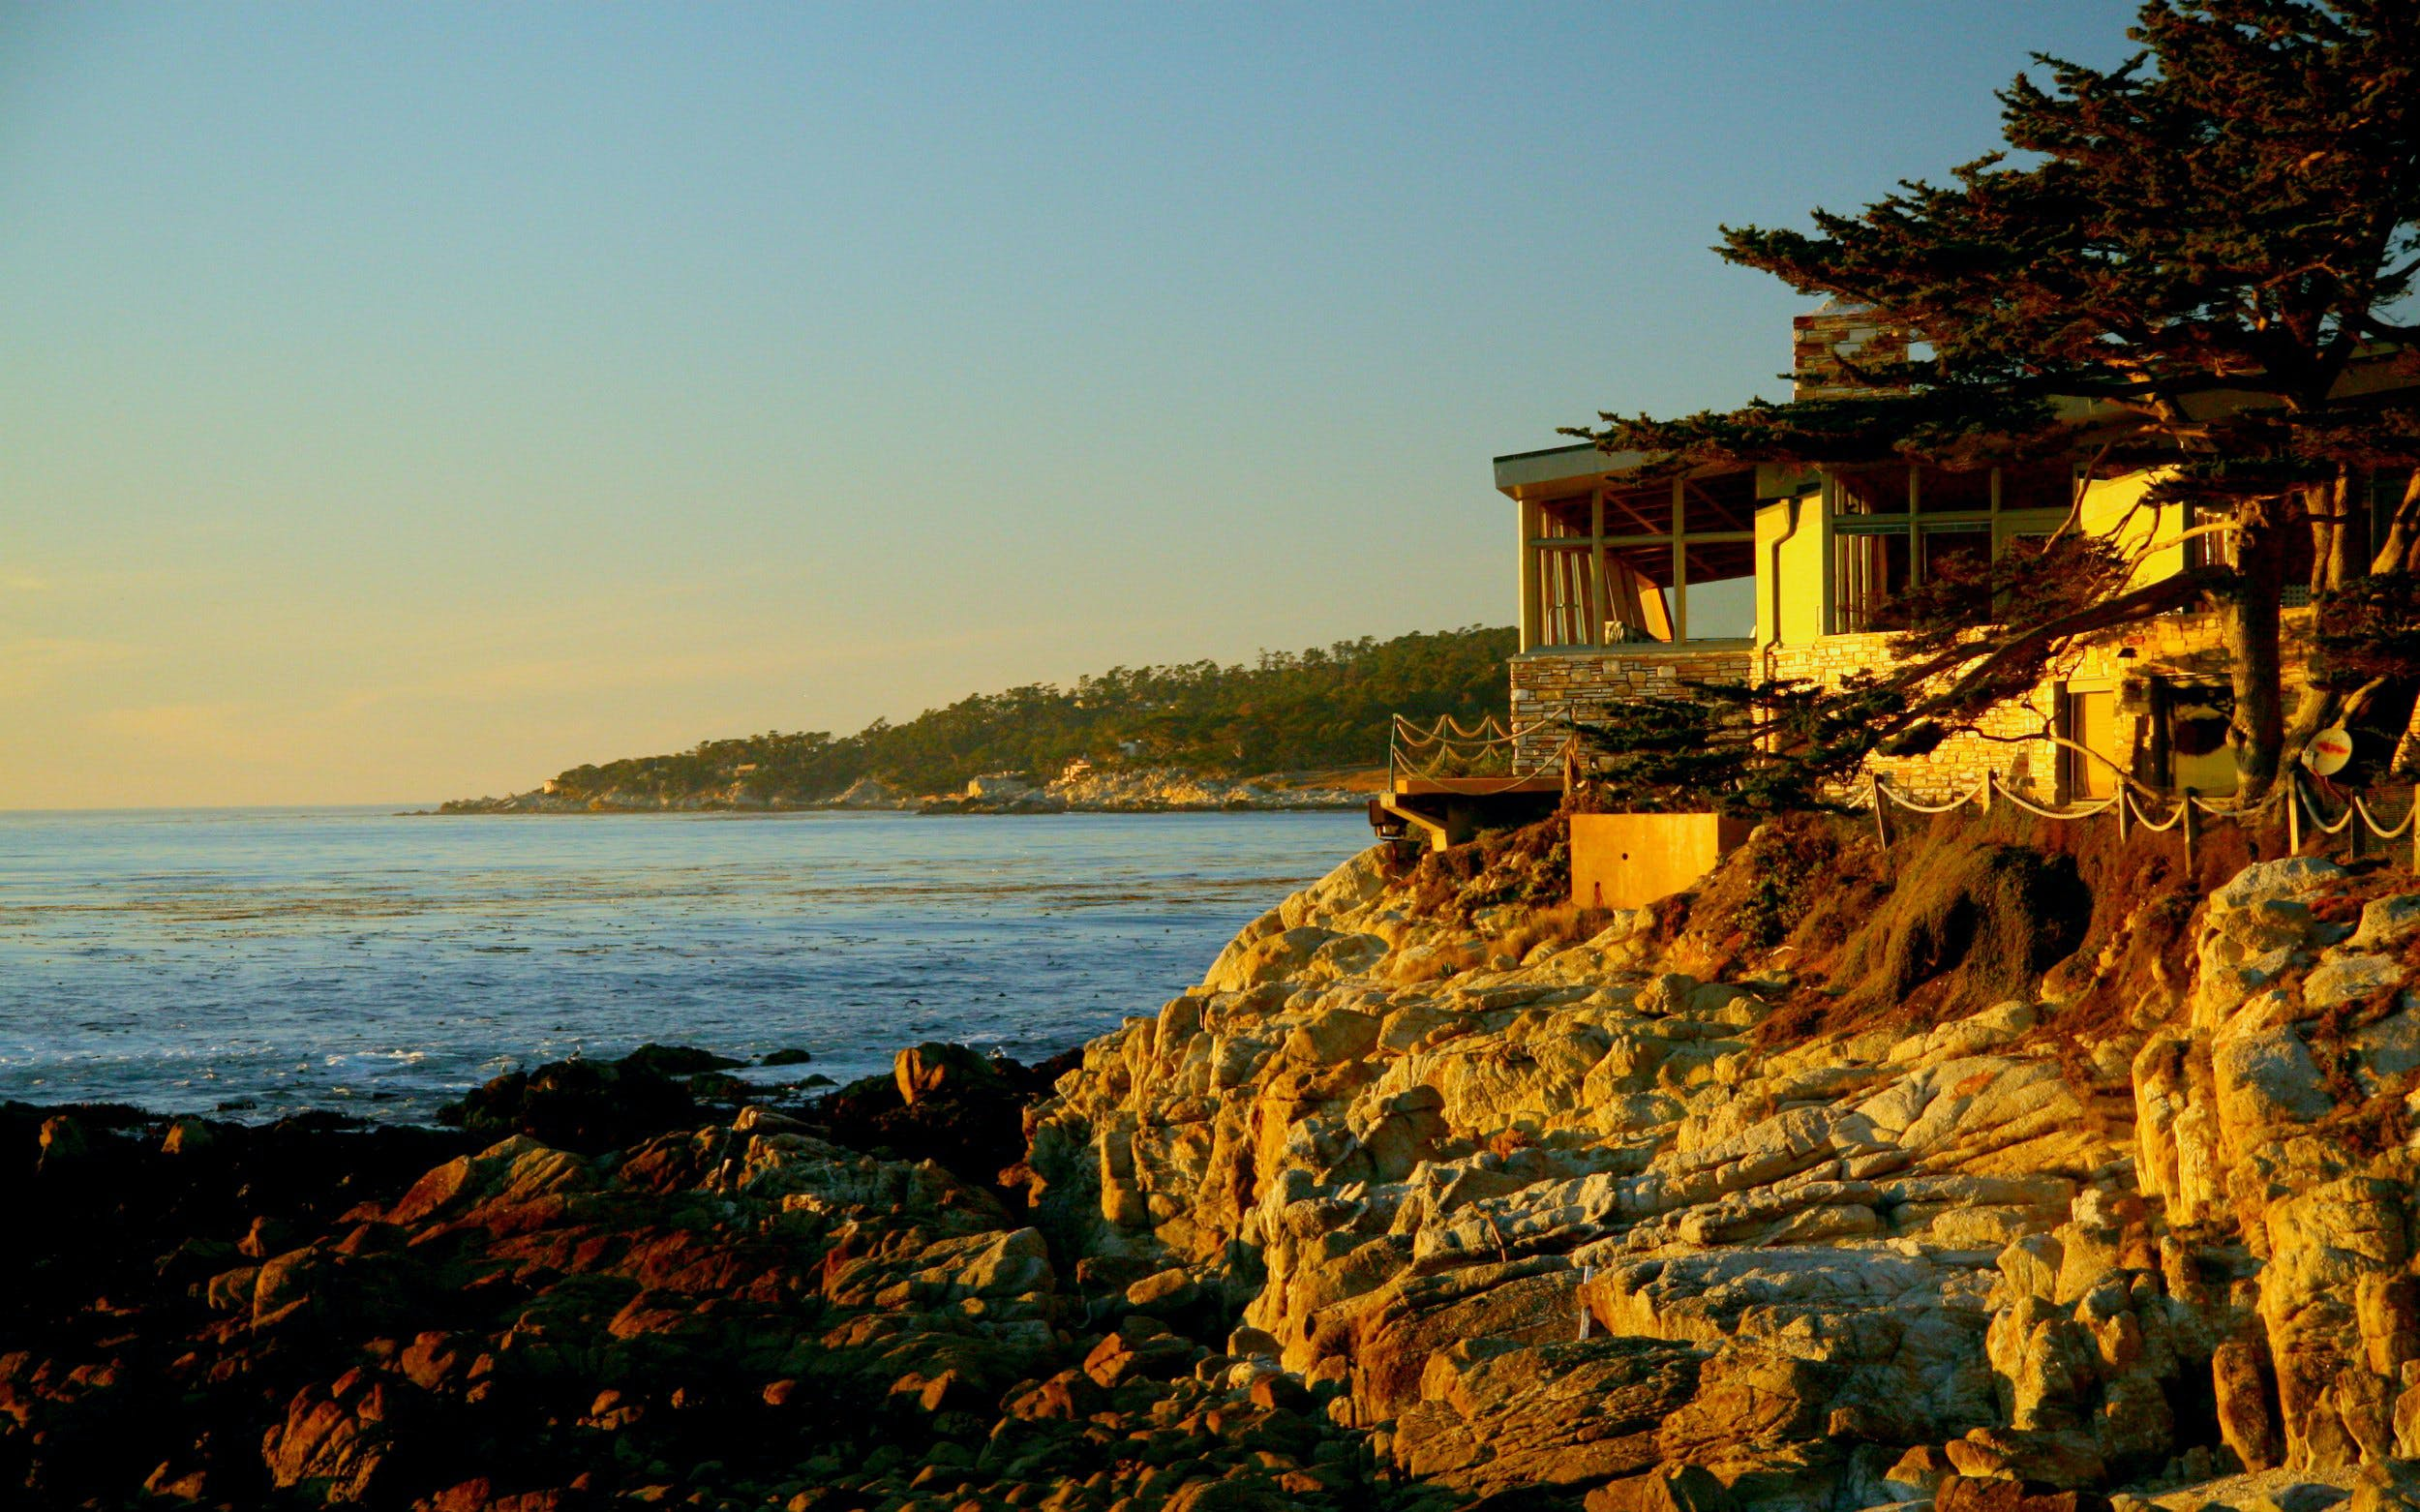 monterey, carmel & the 17-mile drive-3